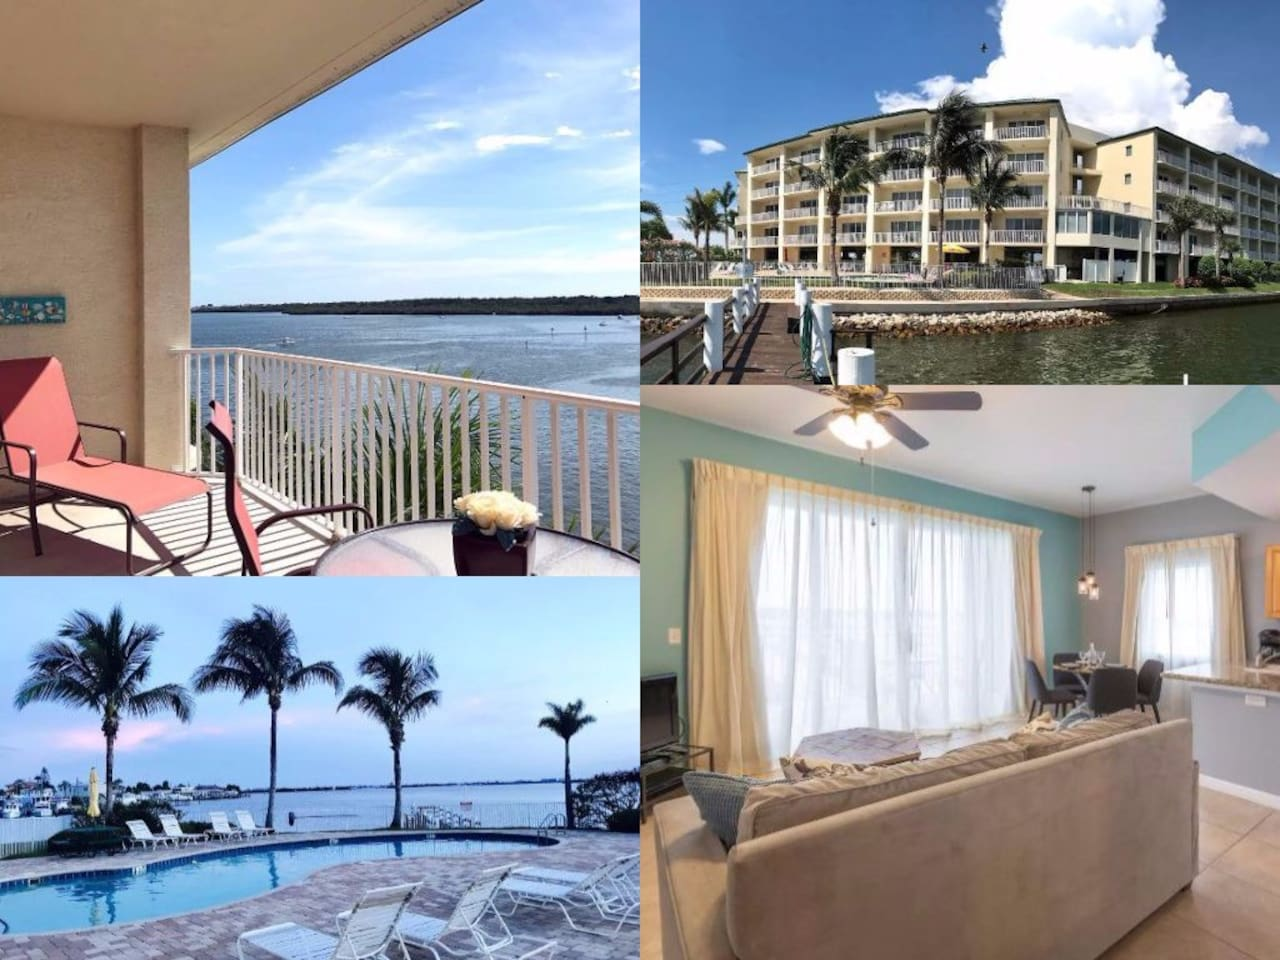 View from balcony; Condo from private dock; Private pool and hot tub; Cute interior